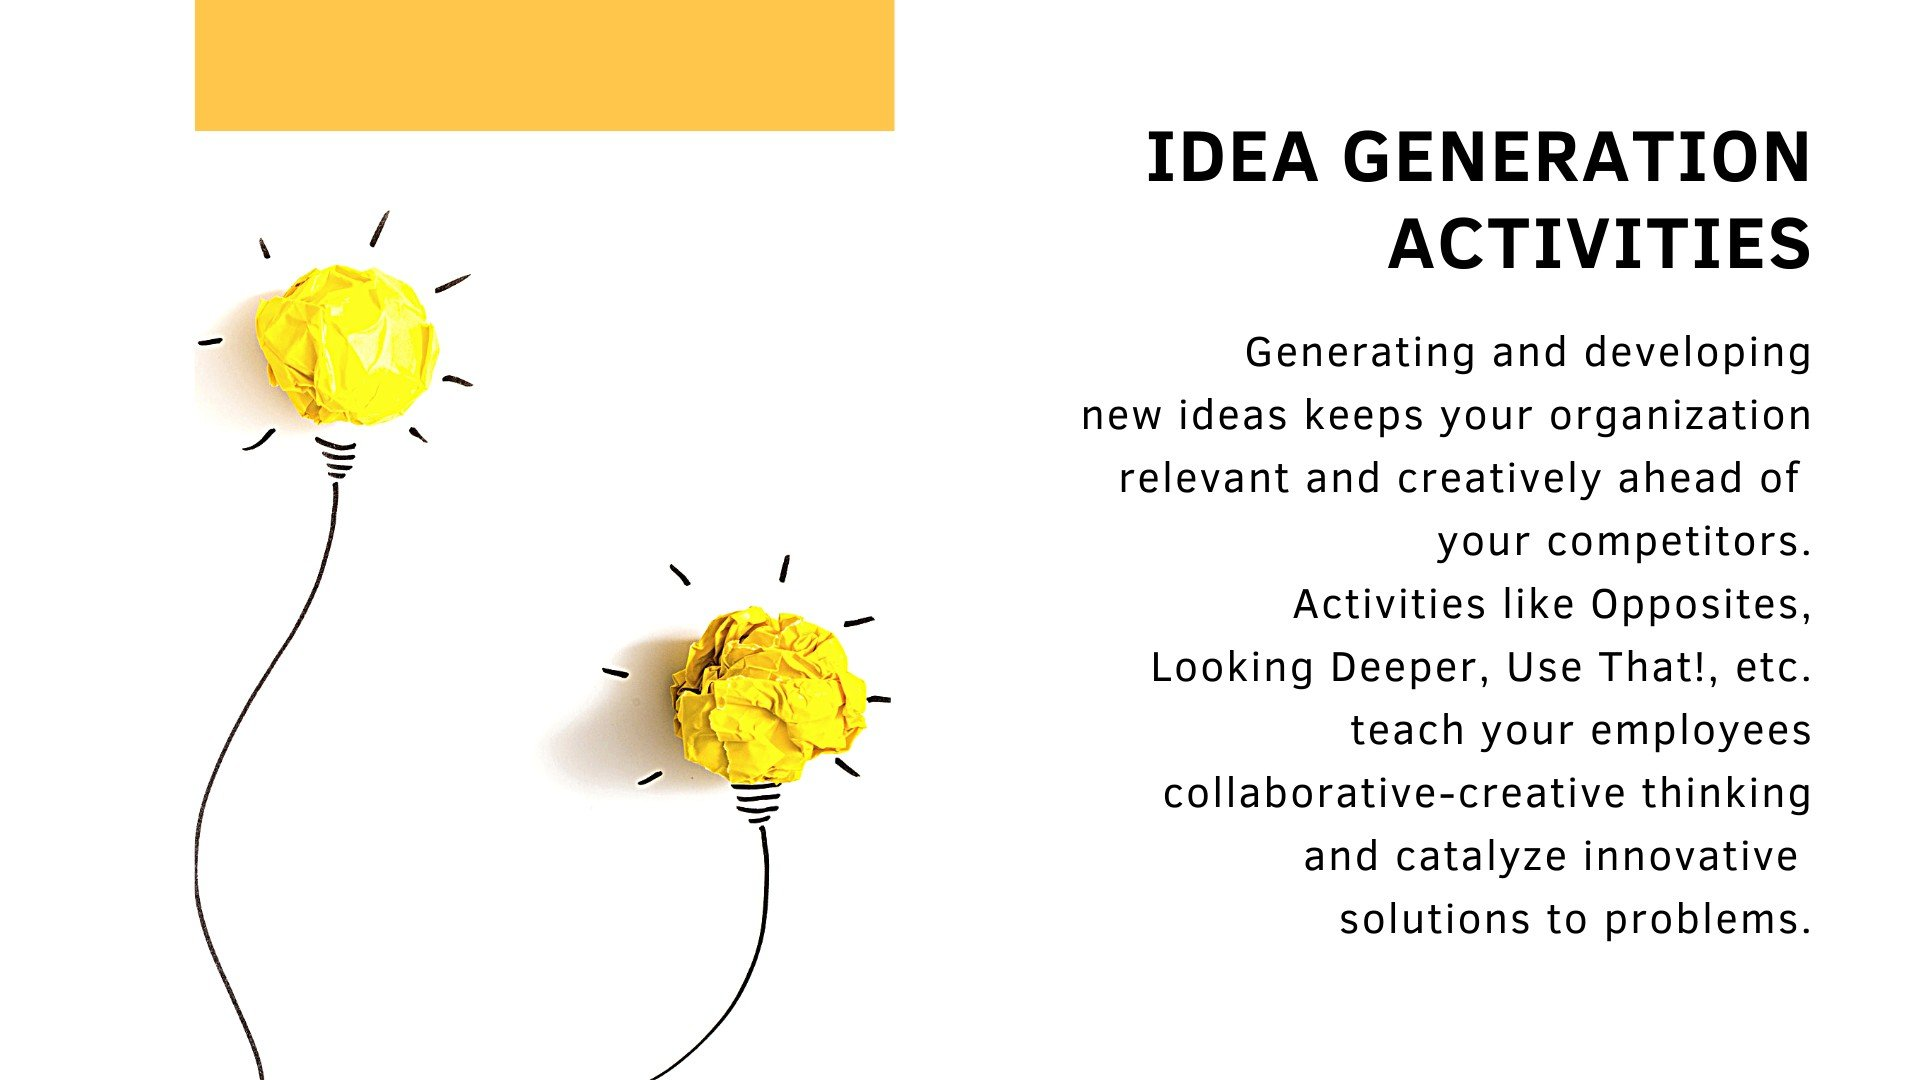 Idea generation activities. Generating and developing new ideas keeps your organization relevant and creatively ahead of  your competitors. Activities like Opposites, Looking Deeper, Use That!, etc. teach your employees collaborative-creative thinking and catalyze innovative  solutions to problems.